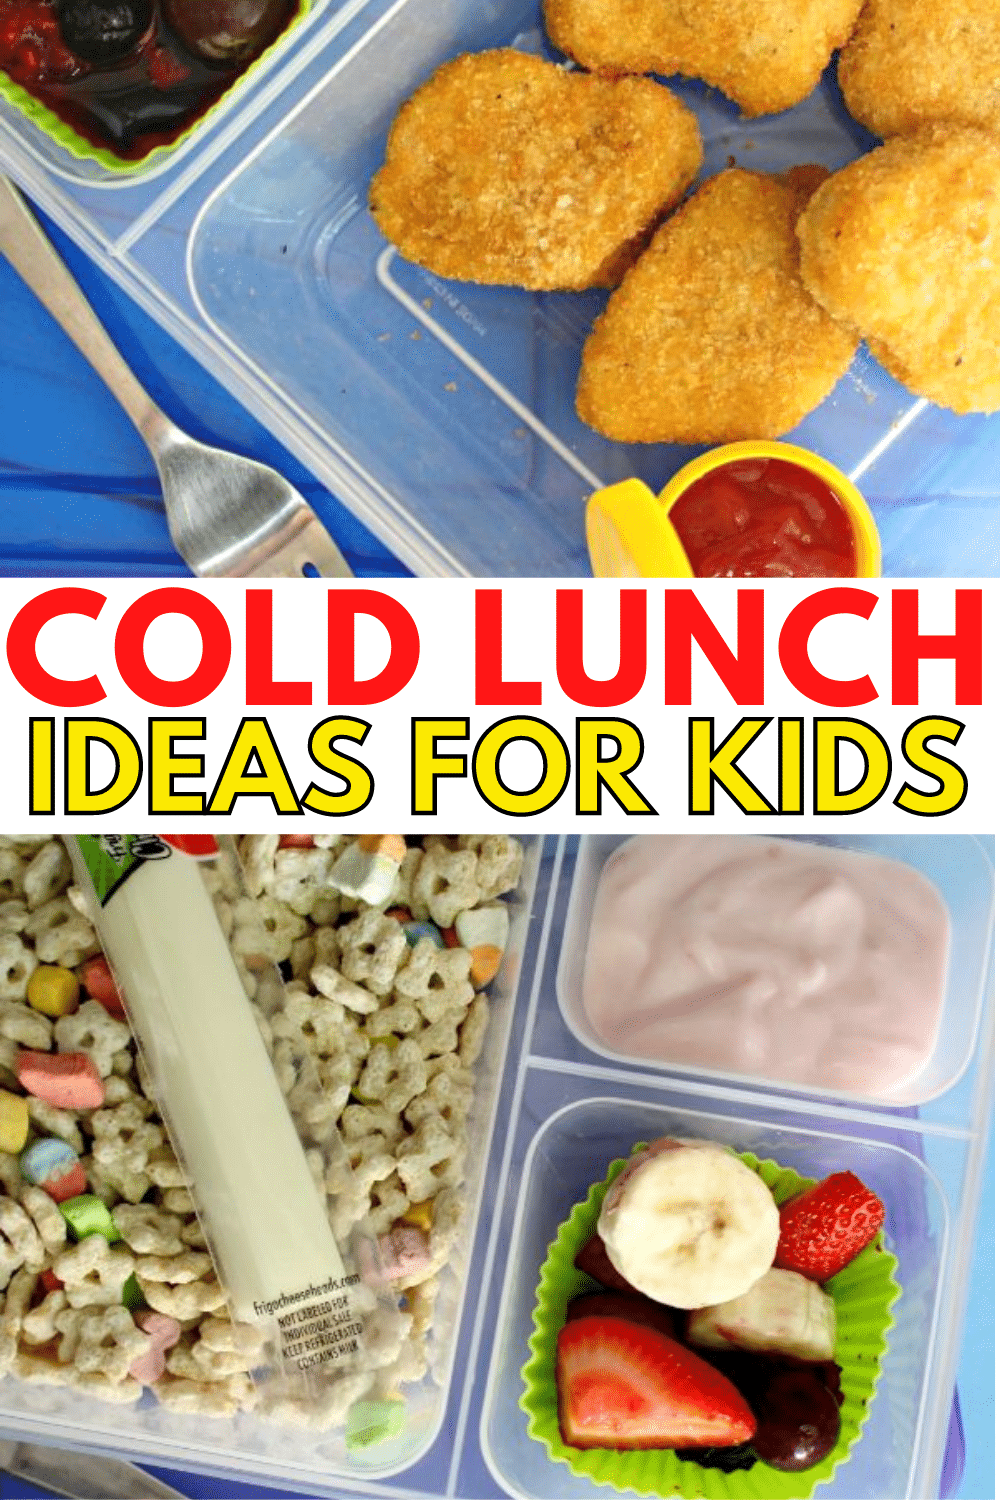 No more boring lunches with these 15 cold lunch ideas for kids. Easy to plan ahead of time and put together in the morning for delicious school lunch. #schoollunch #lunchideas #kidslunch via @wondermomwannab